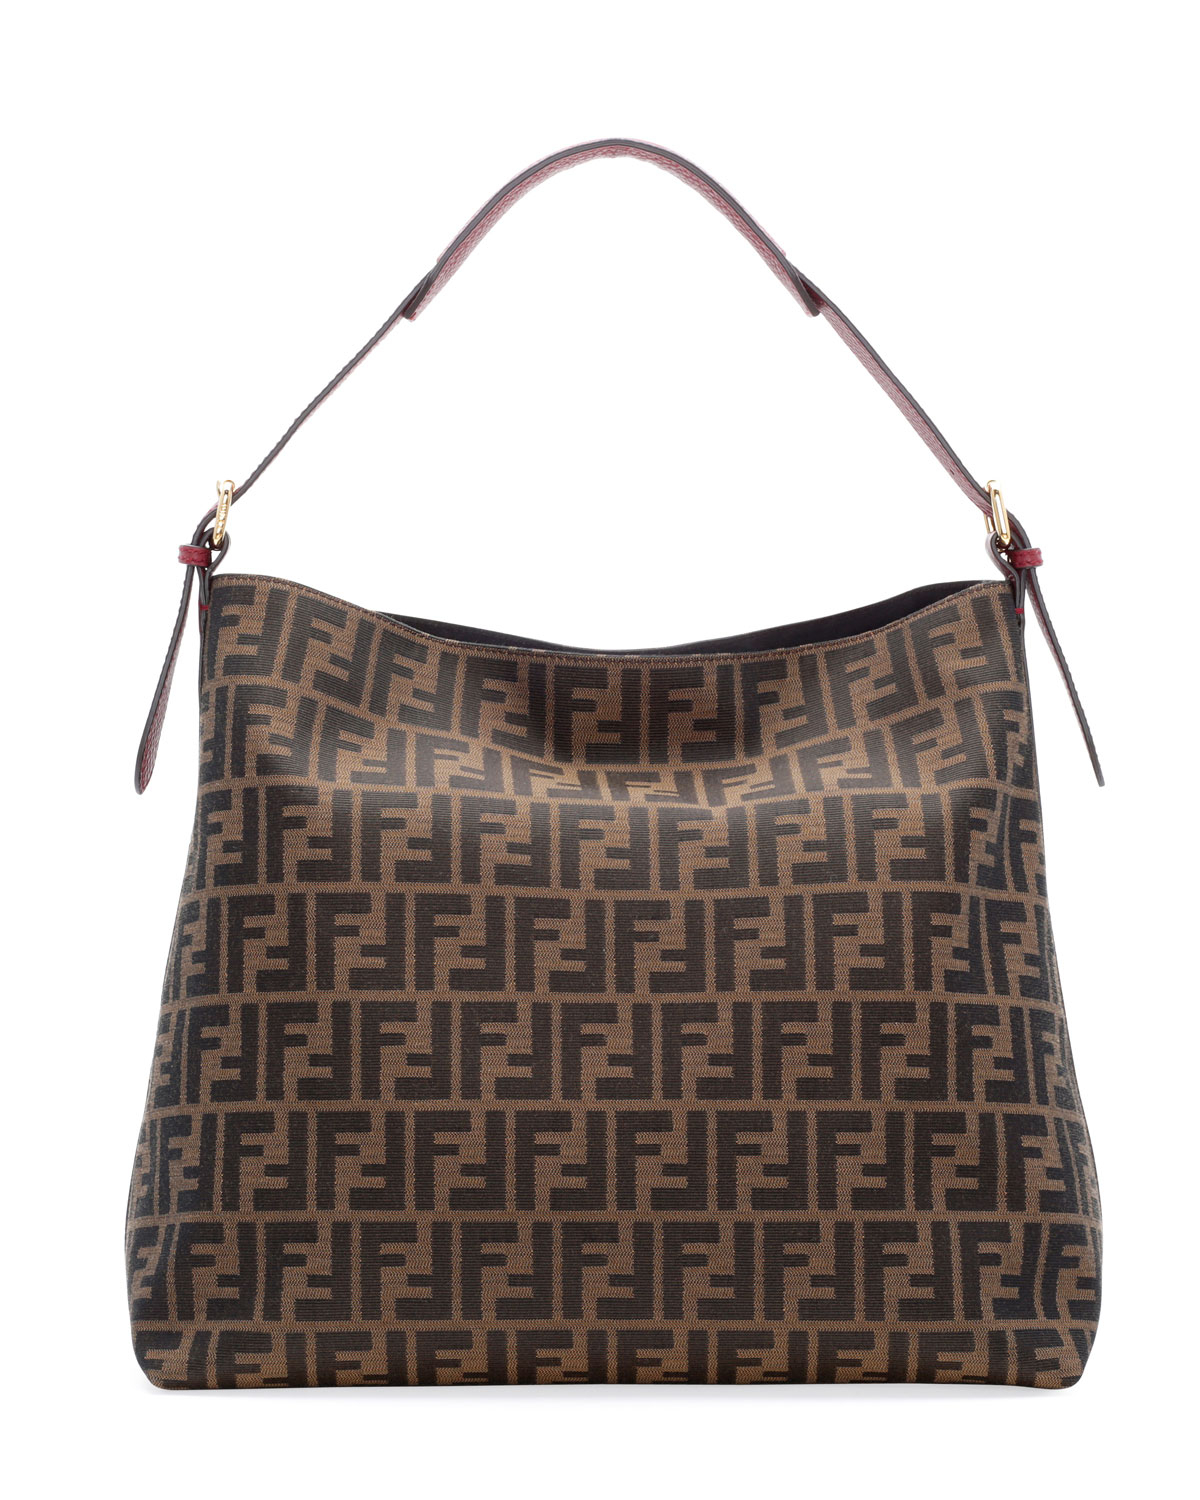 Fendi Zucca-Print Large Canvas Hobo Bag in Brown | Lyst